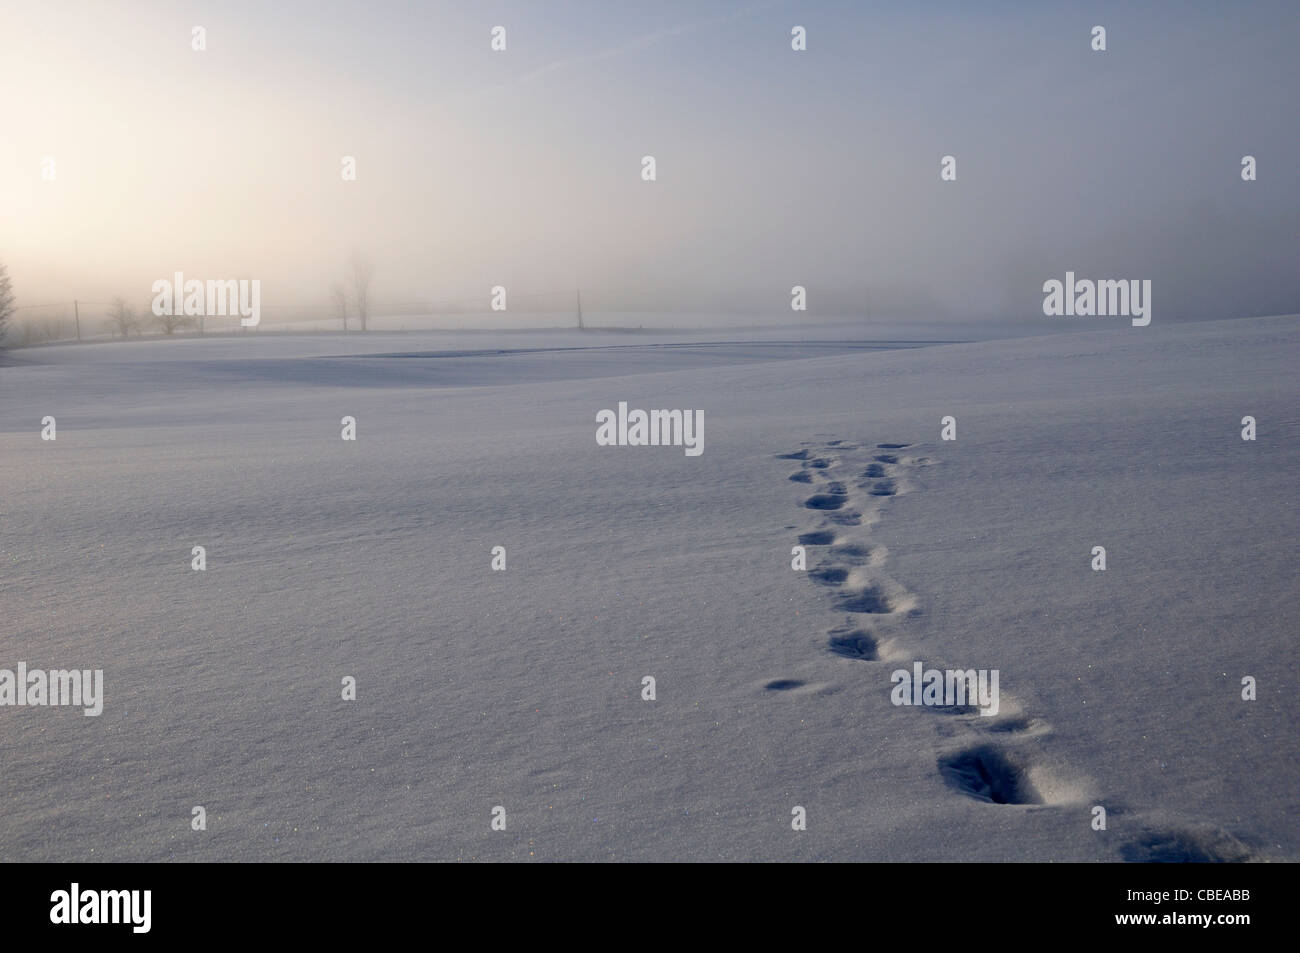 Footprints or animal tracks across a snowy field - Stock Image